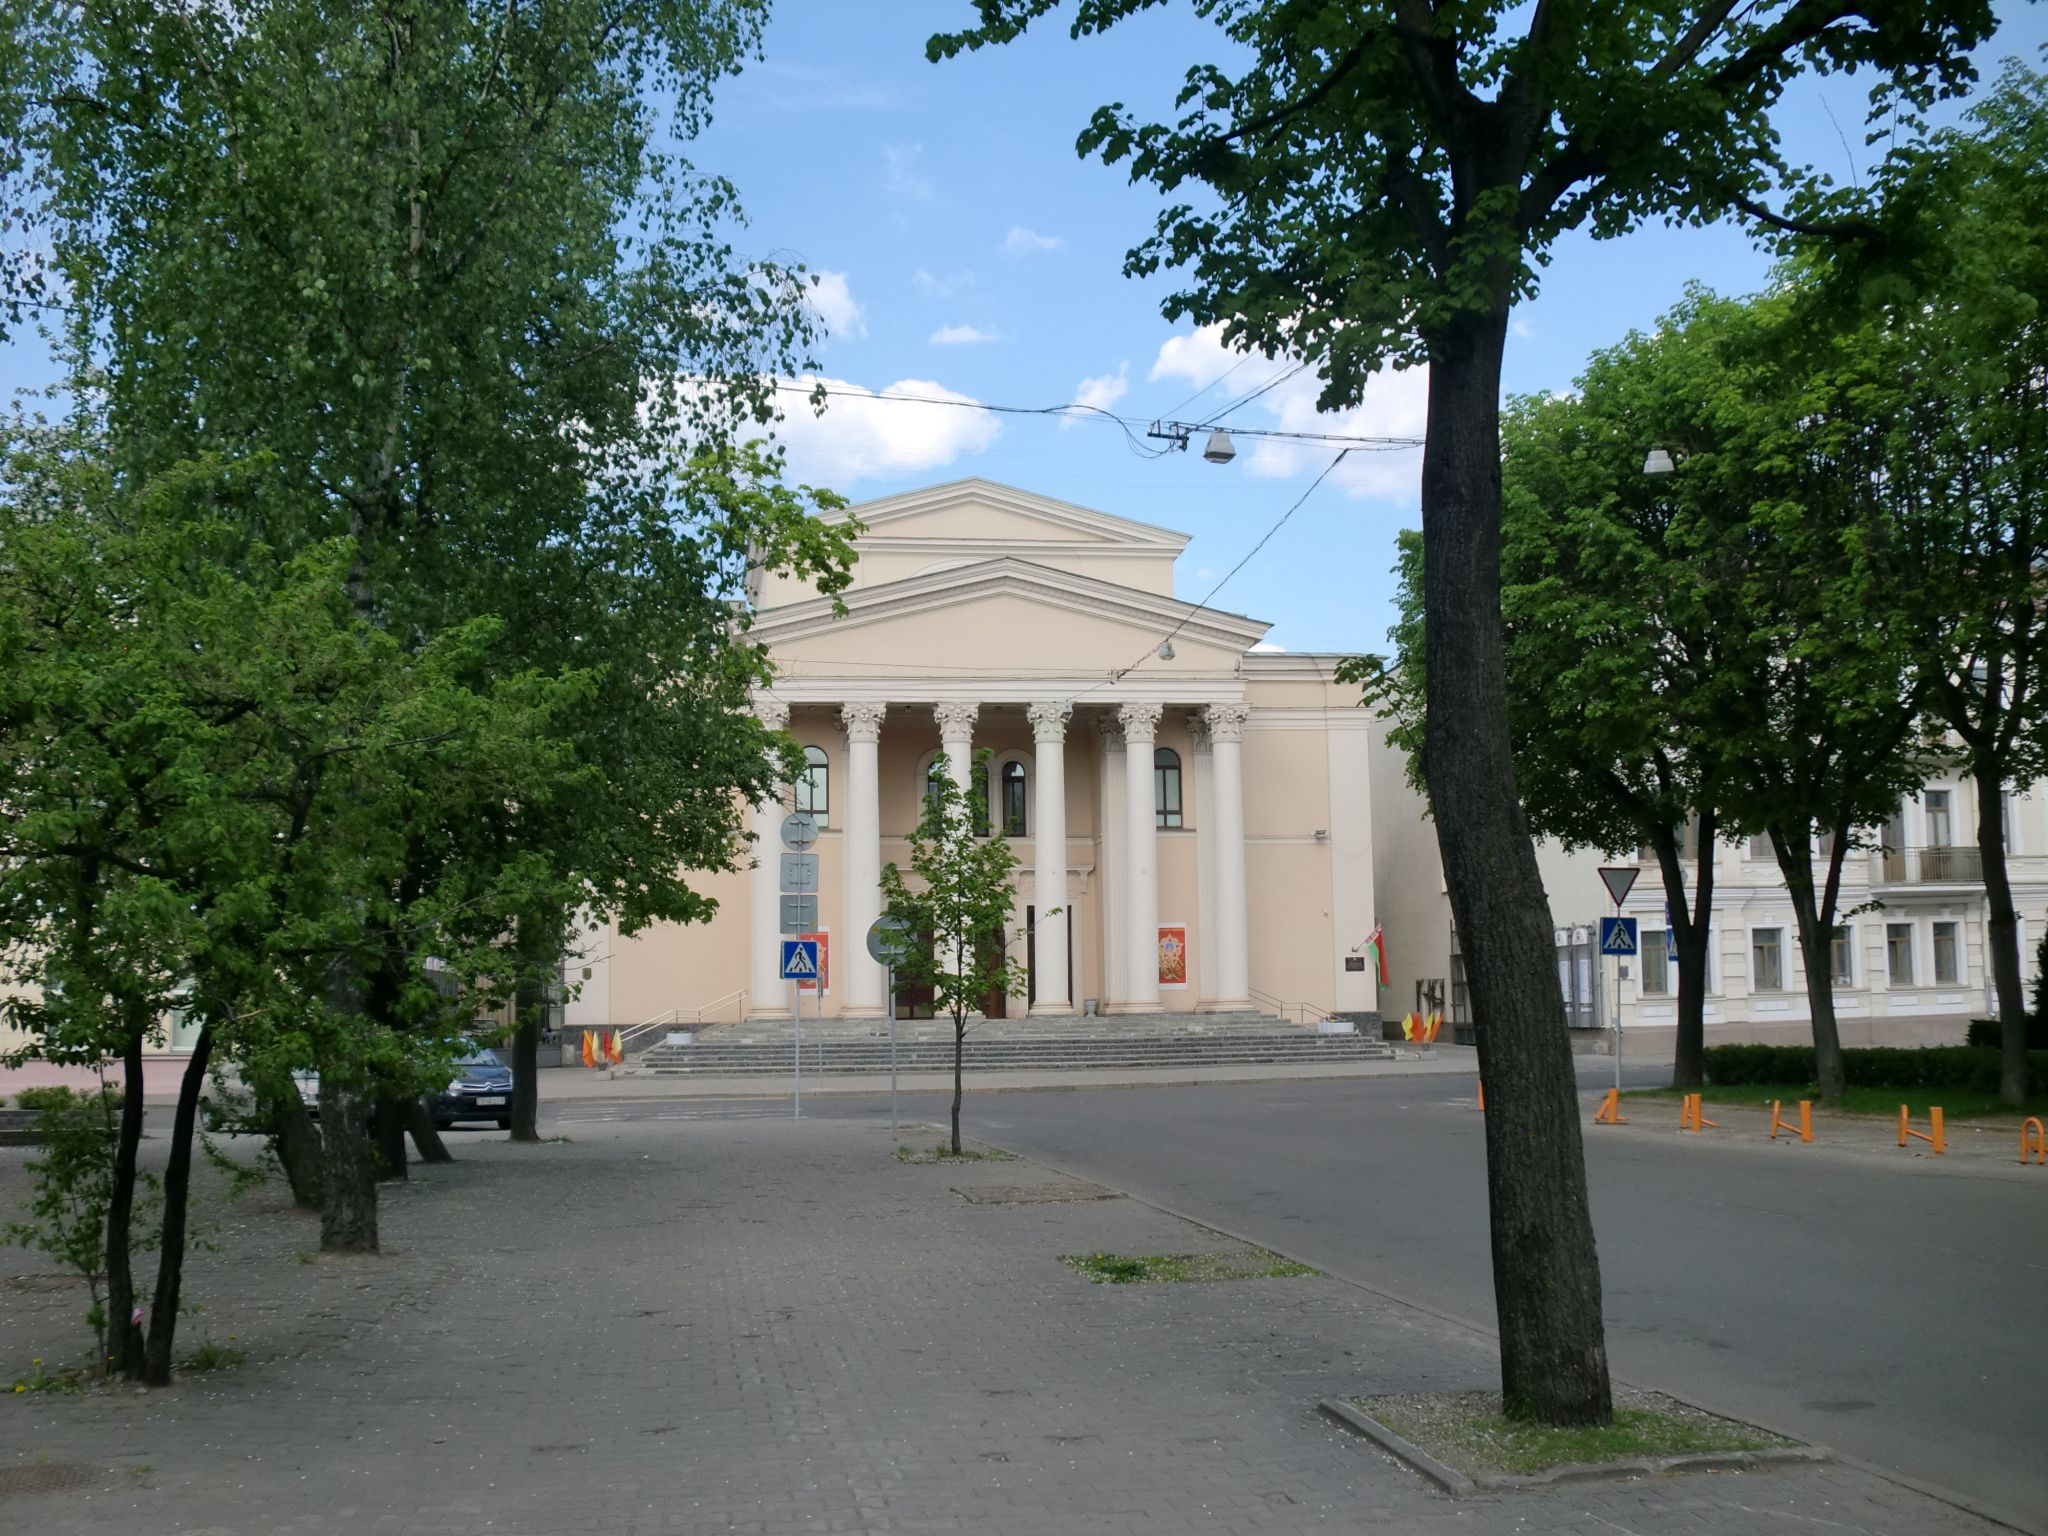 Minsk city 5 - Minsk, 1 amazing city you have to see